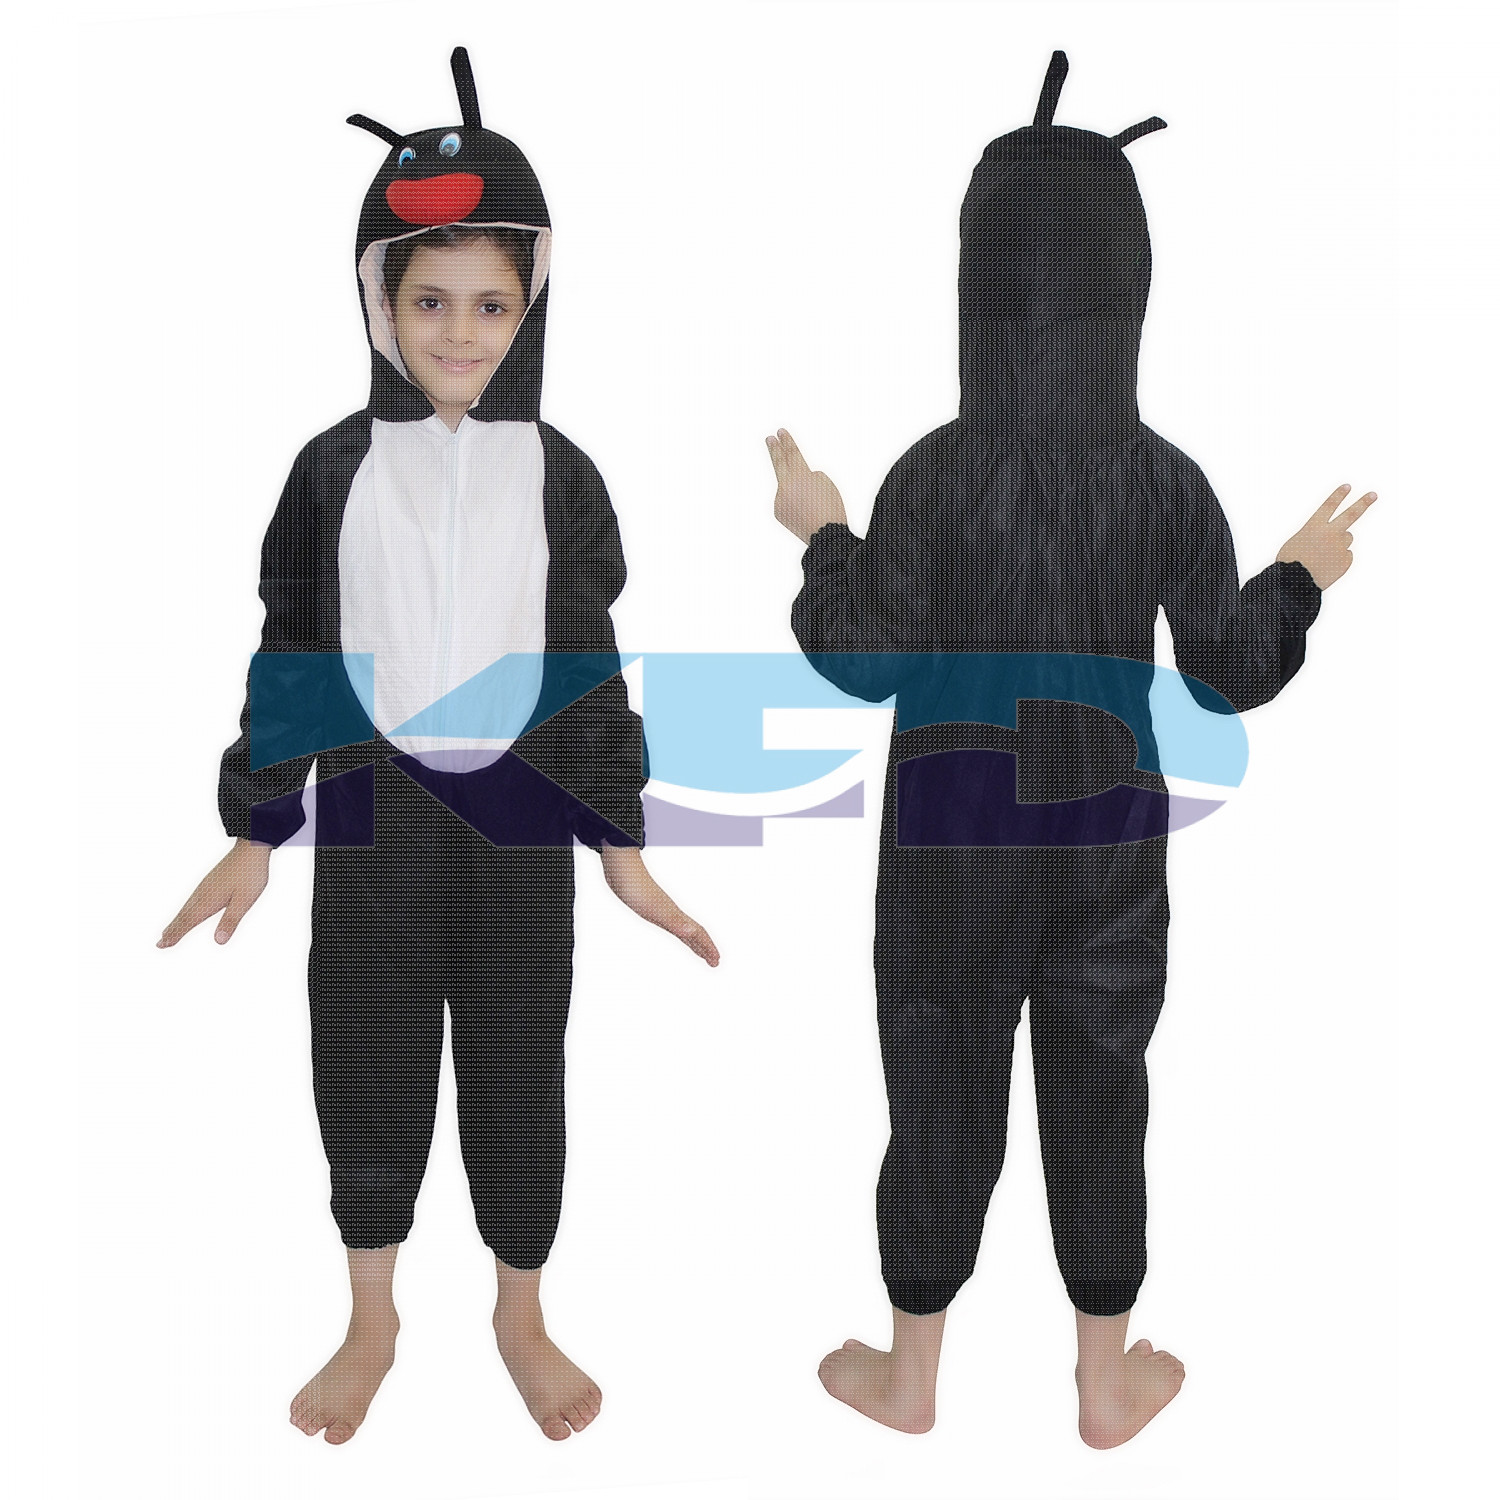 Ant fancy dress for kids,Insect Costume for School Annual function/Theme Party/Competition/Stage Shows Dress